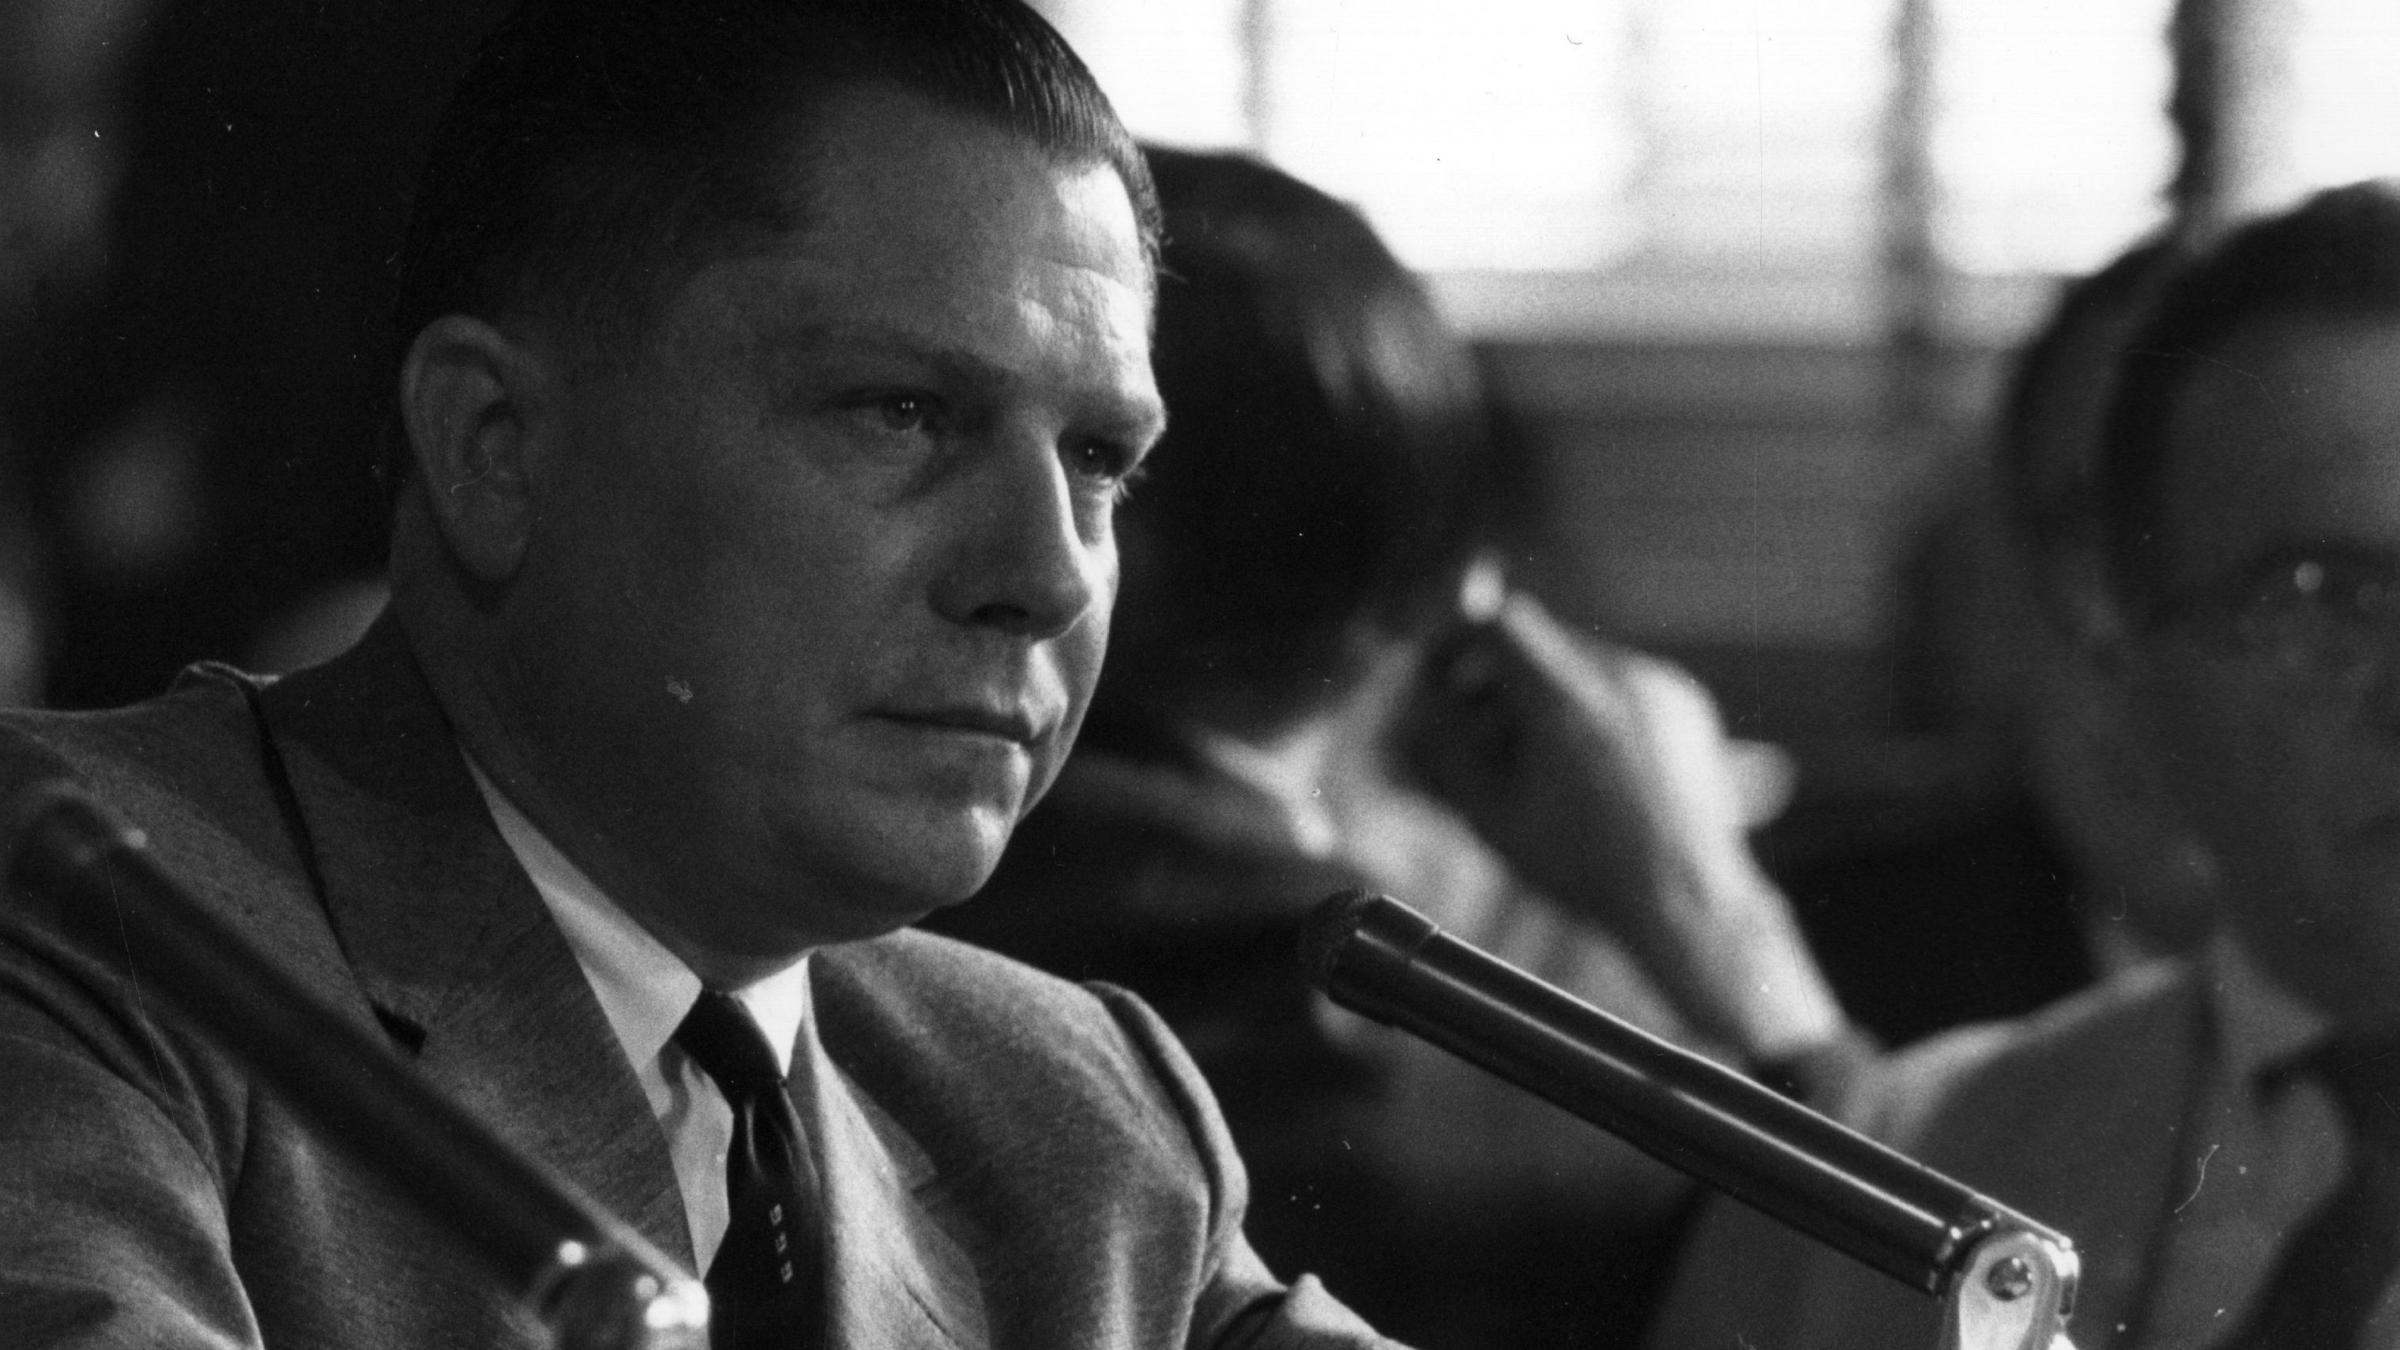 the life and disappearance of jimmy hoffa 1975-7-30 on july 30, 1975, teamster boss jimmy hoffa disappeared without a trace at the time,  also in season 11 the disappearance of glenn miller in 1944,.